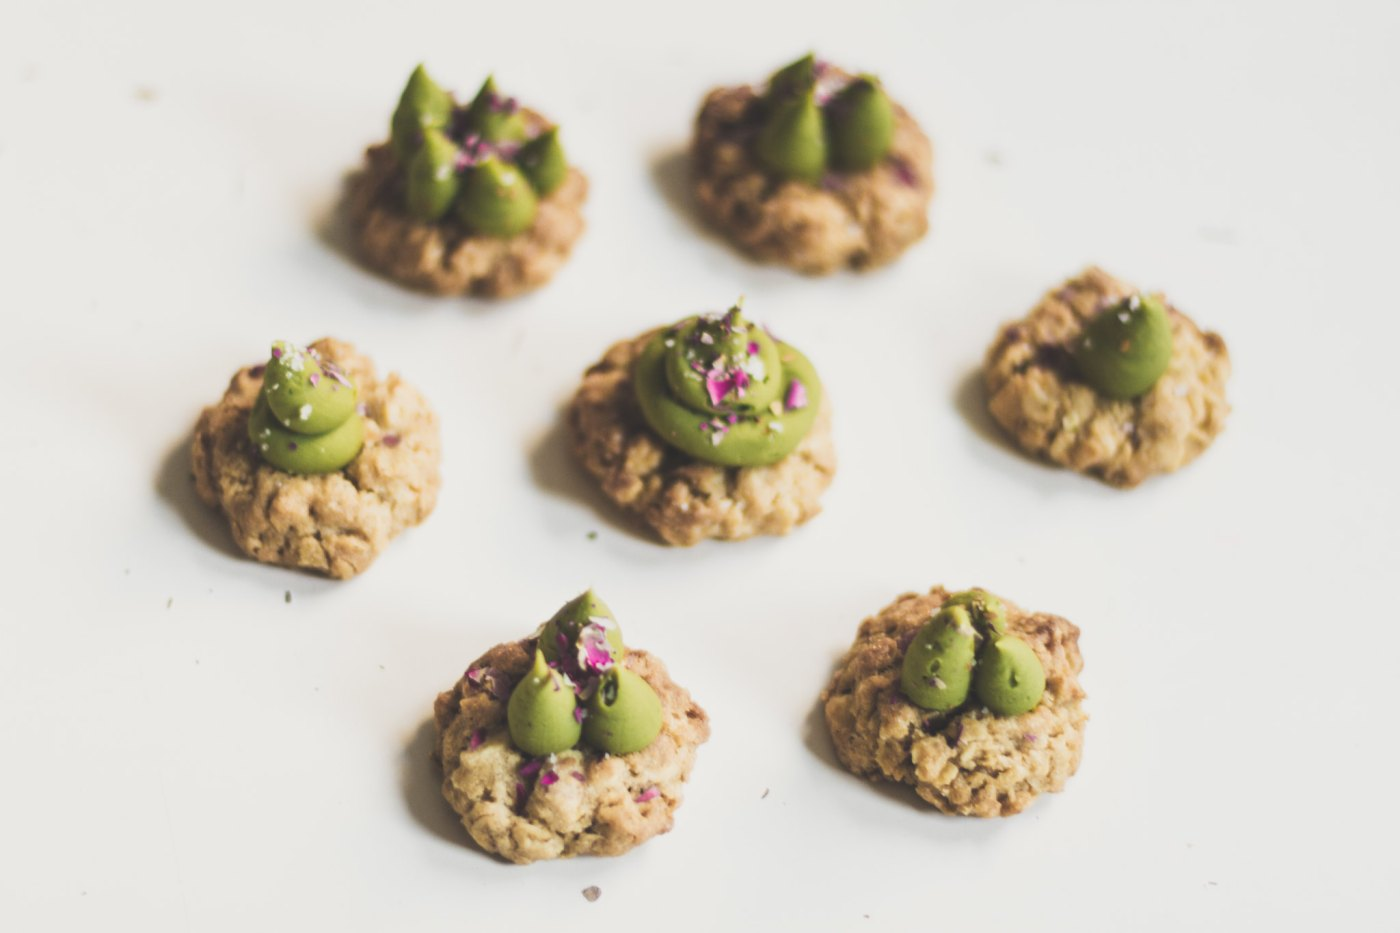 salted oatmeal rose cookies with white chocolate and matcha ganache